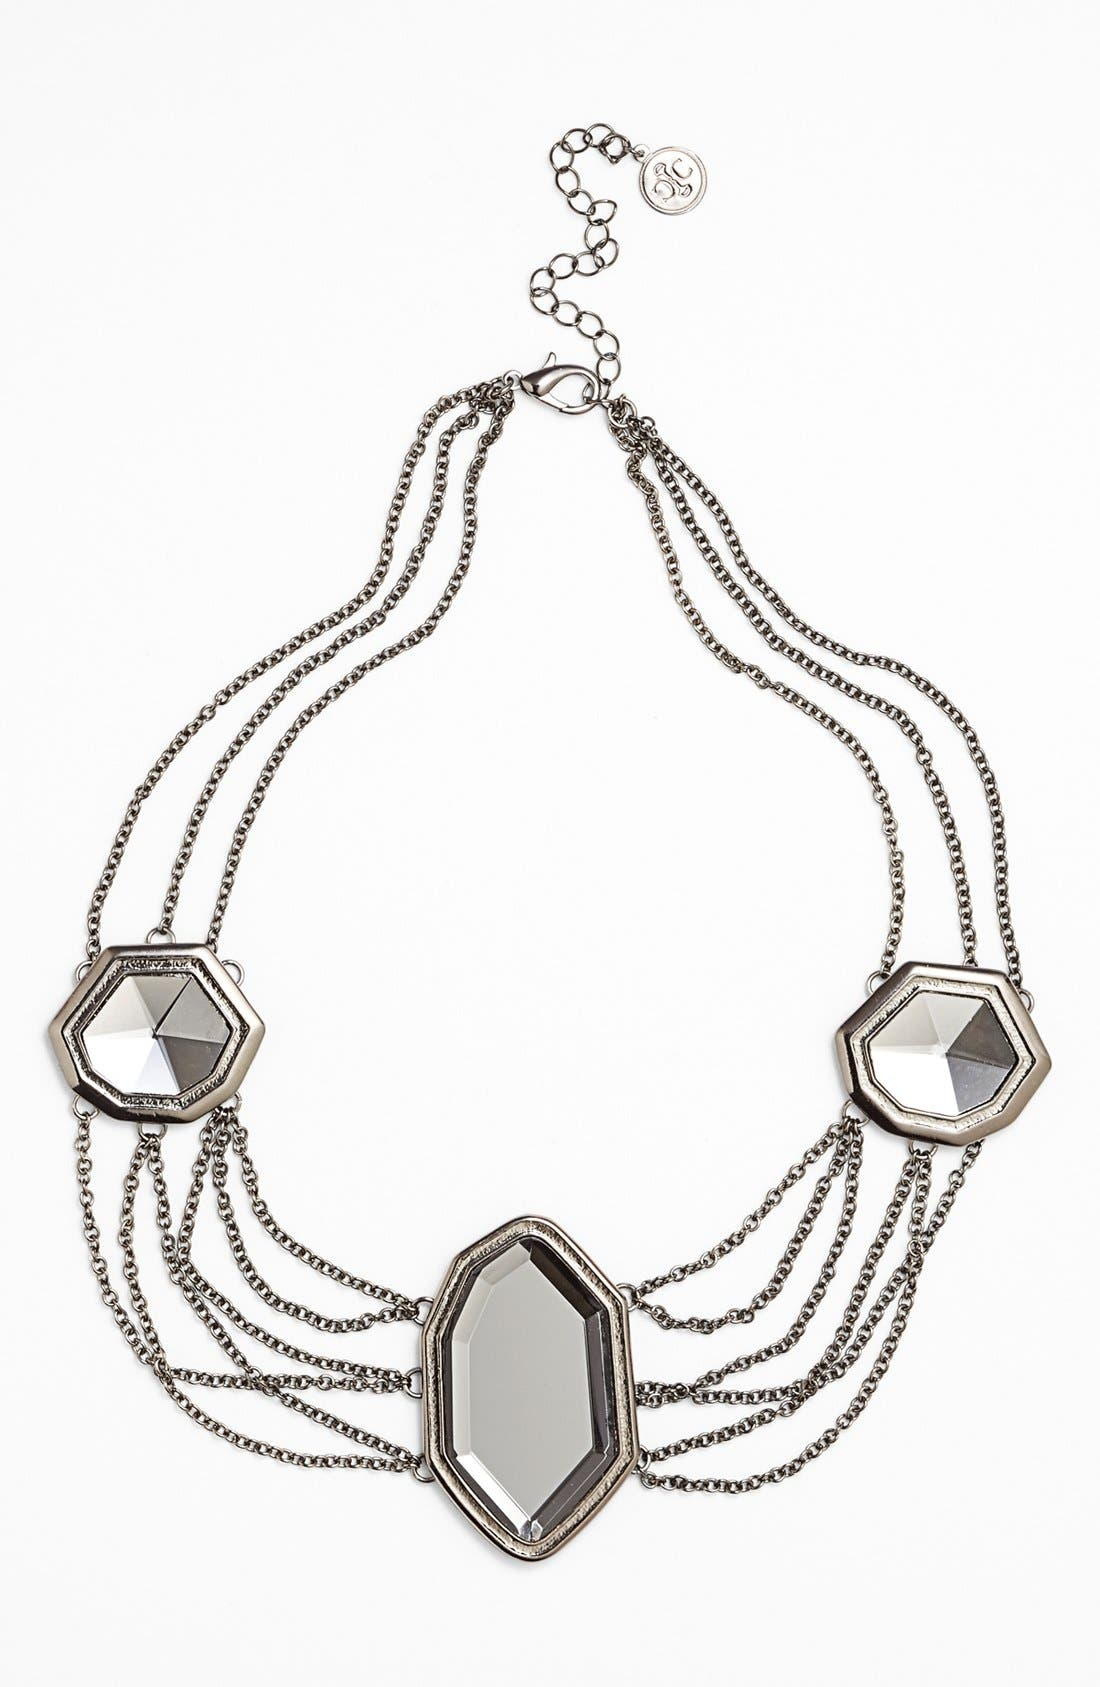 Main Image - Carbon Copy Mirrored Collar Necklace